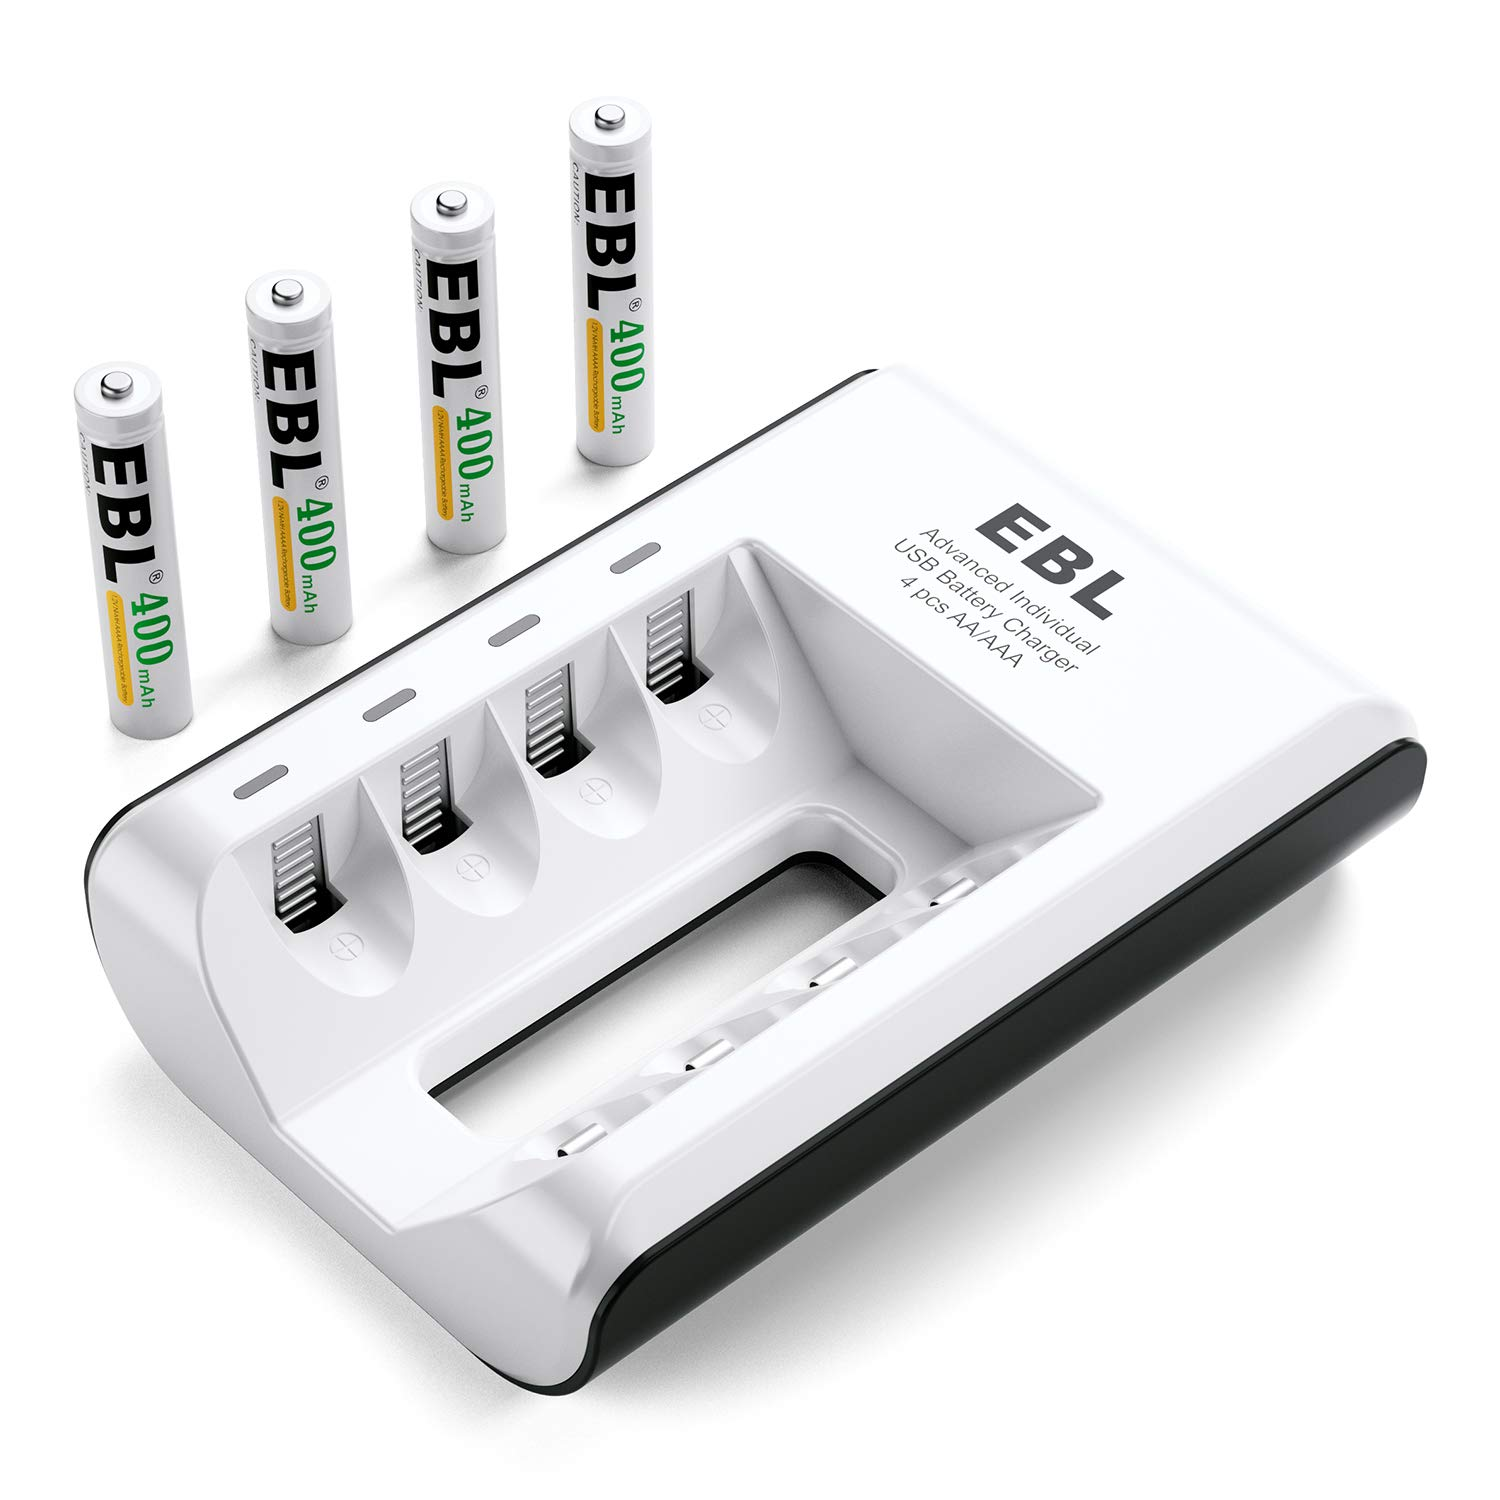 EBL AA AAA AAAA Ni-MH Ni-CD Individual Smart Battery Charger with 4 Packs AAAA Rechargeable Batteries 400mAh Surface Pen Battery